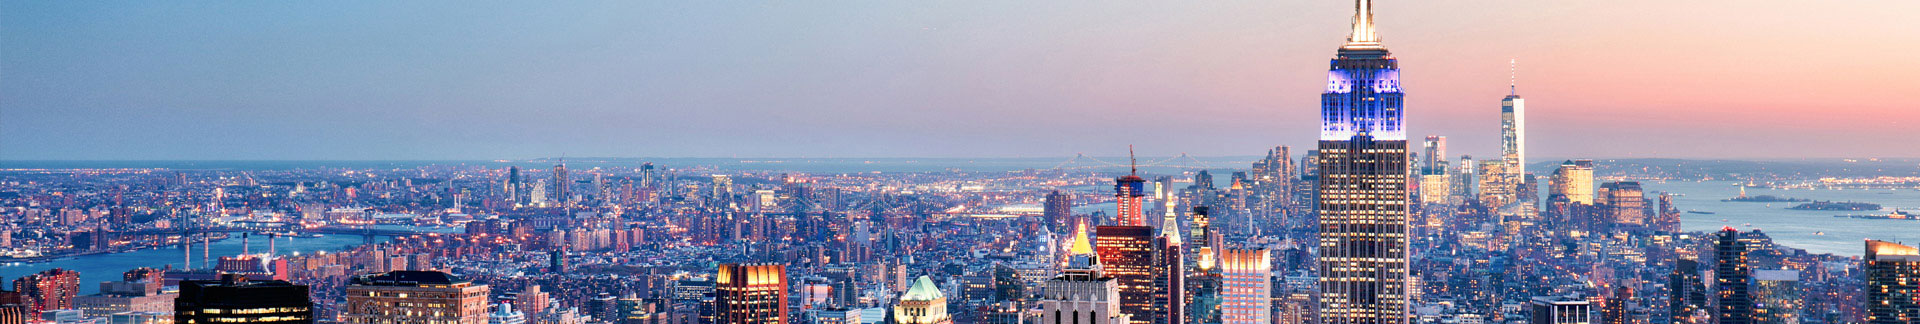 Wide evening view of downtown New York